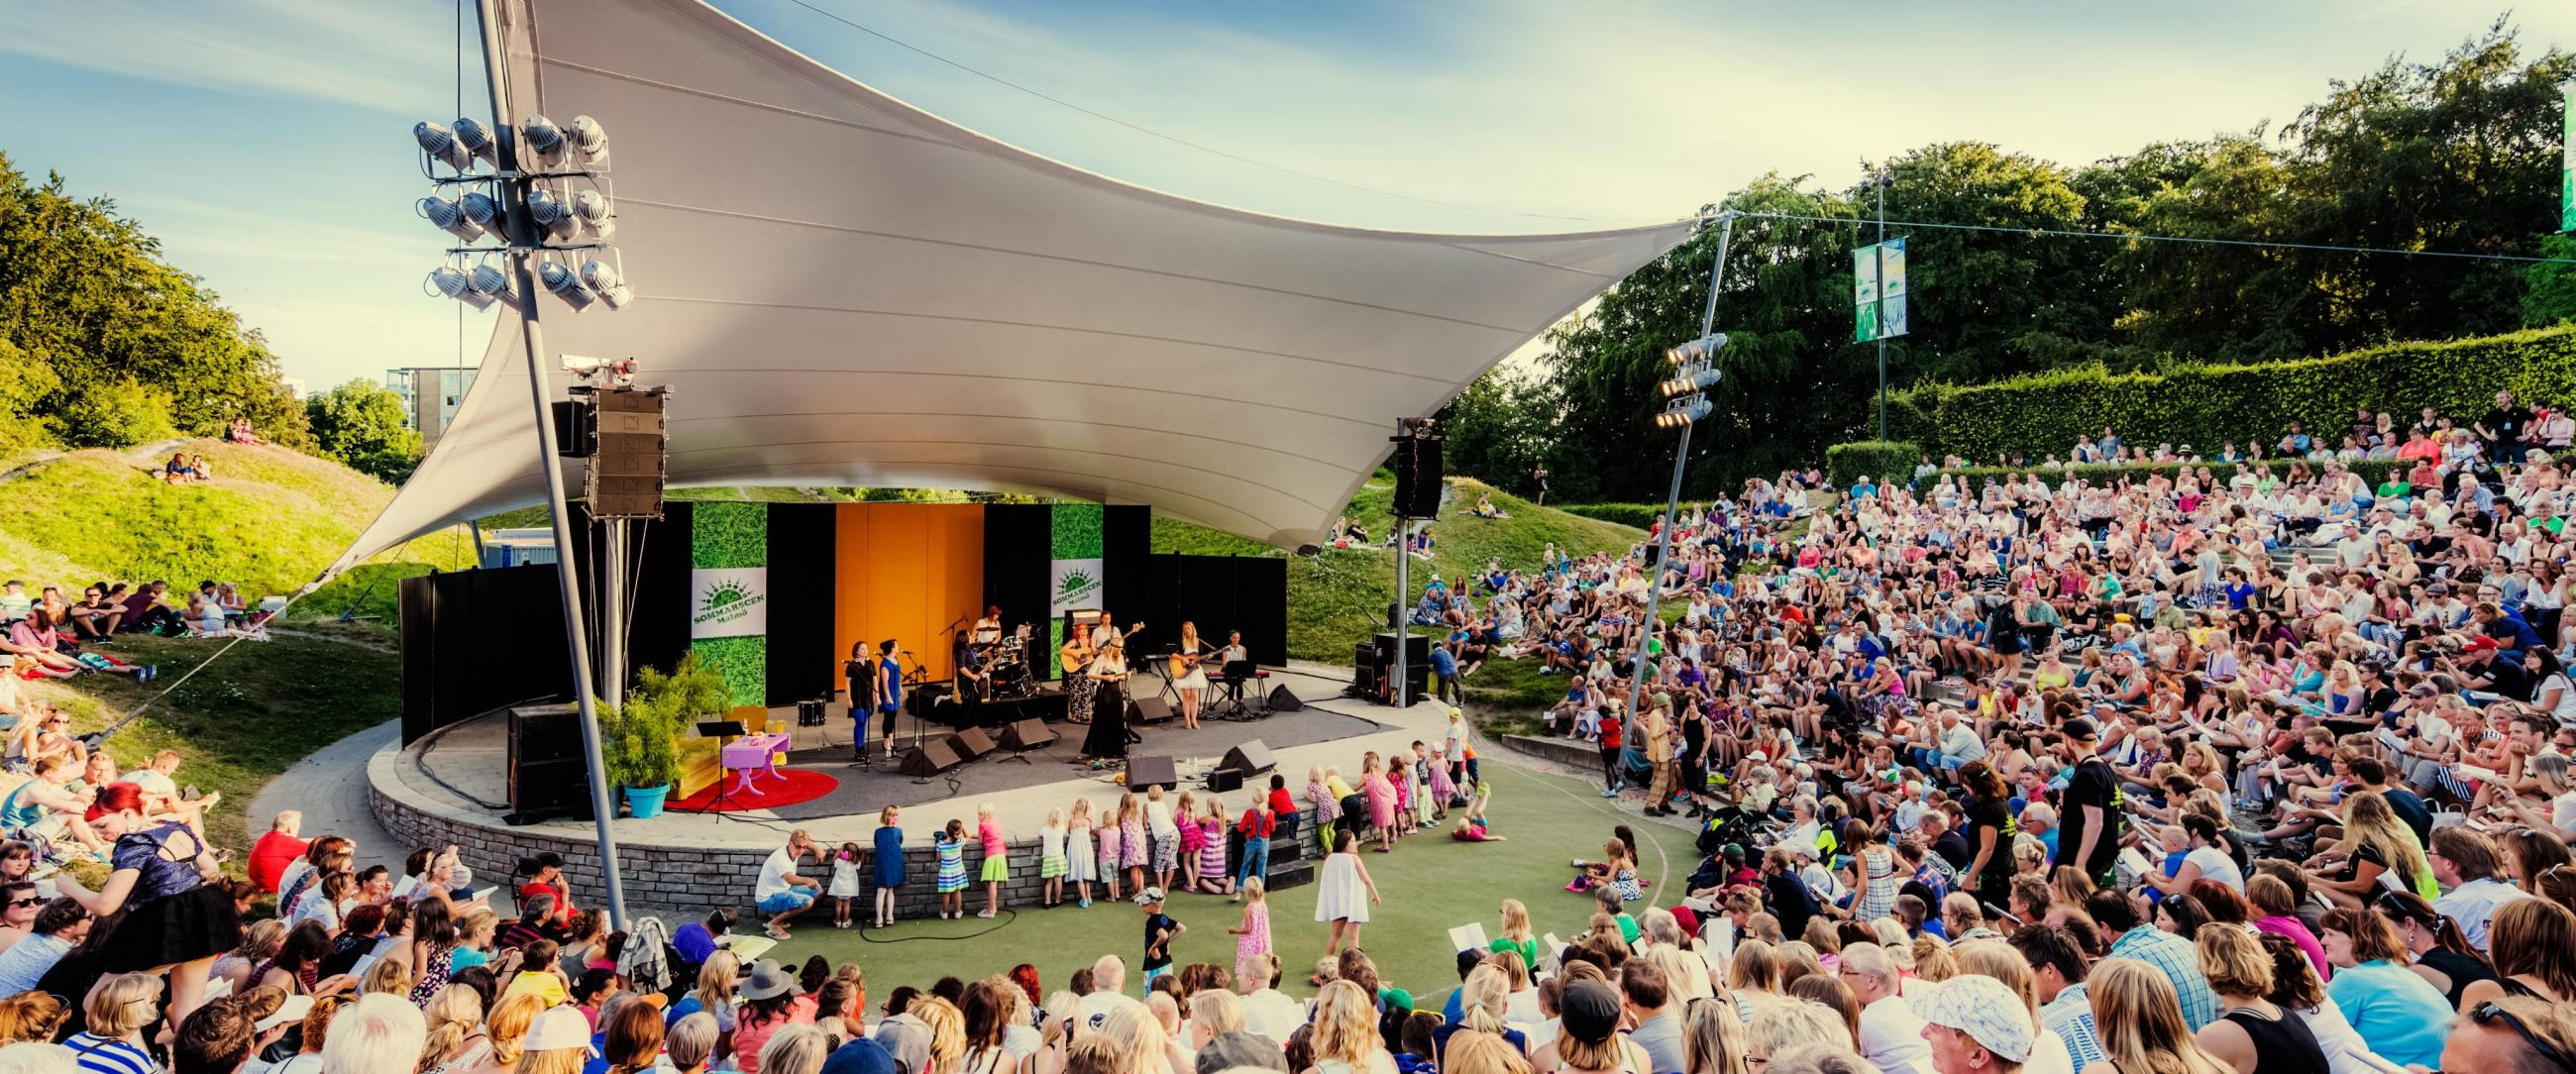 "The summer event ""Sommarscen"" in Malmö"